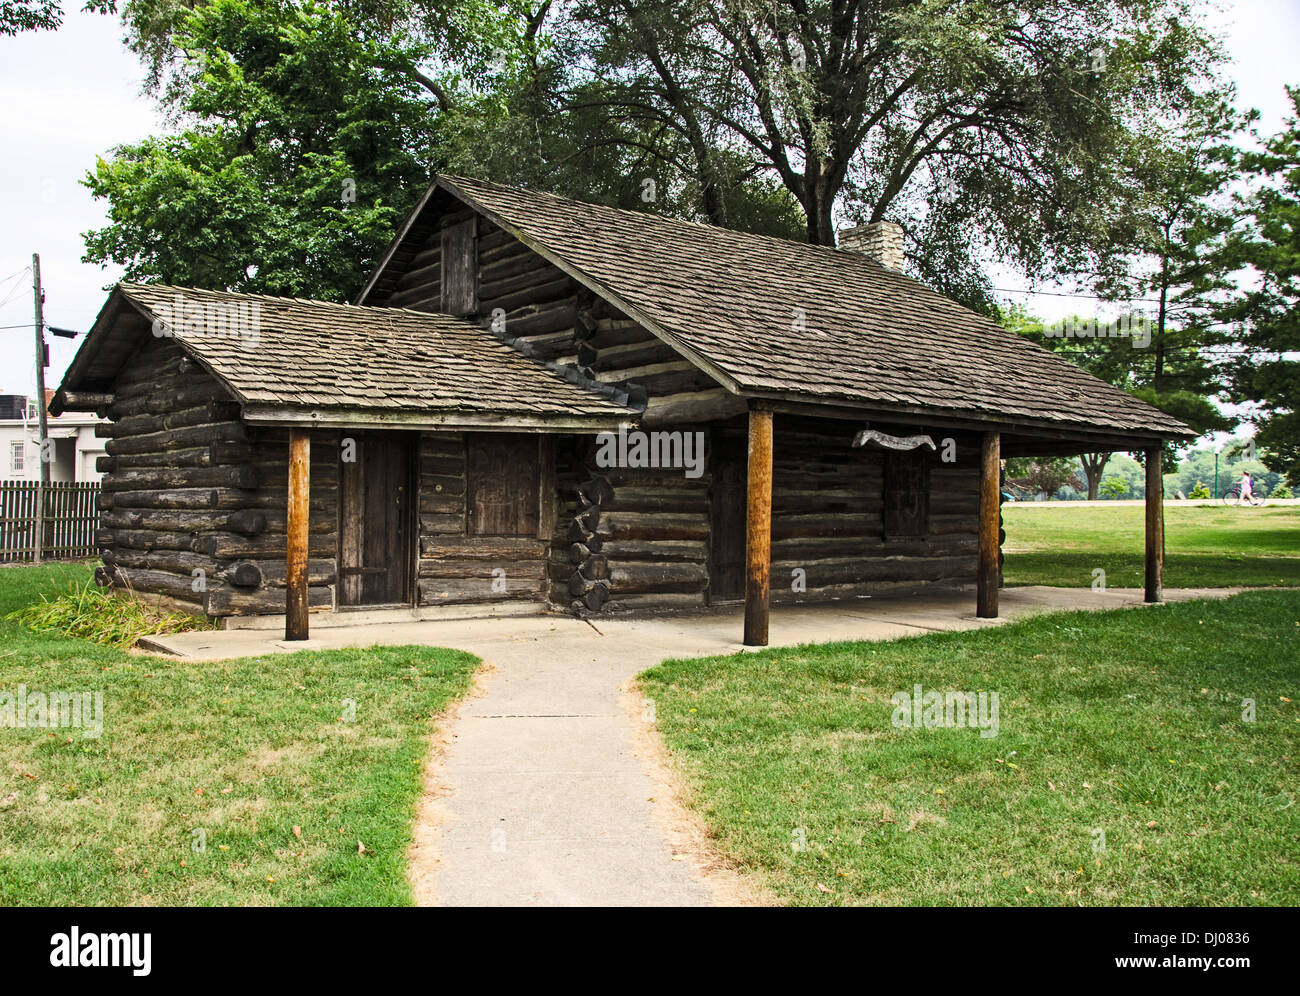 Old Settlers' Log Cabin in Dixon, Illinois, a town along the Lincoln Highway - Stock Image